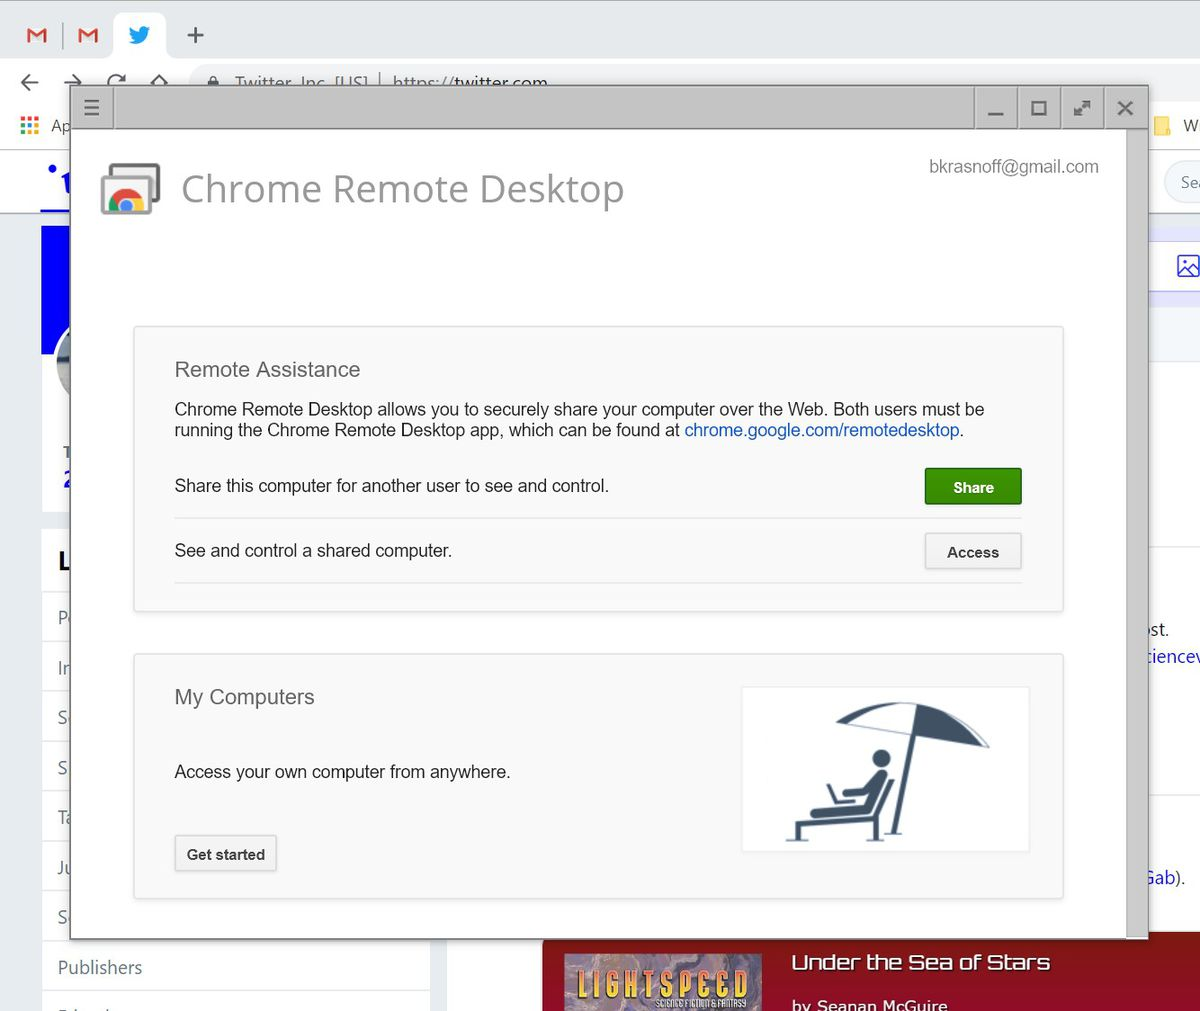 How to access a remote computer using Google Remote Desktop